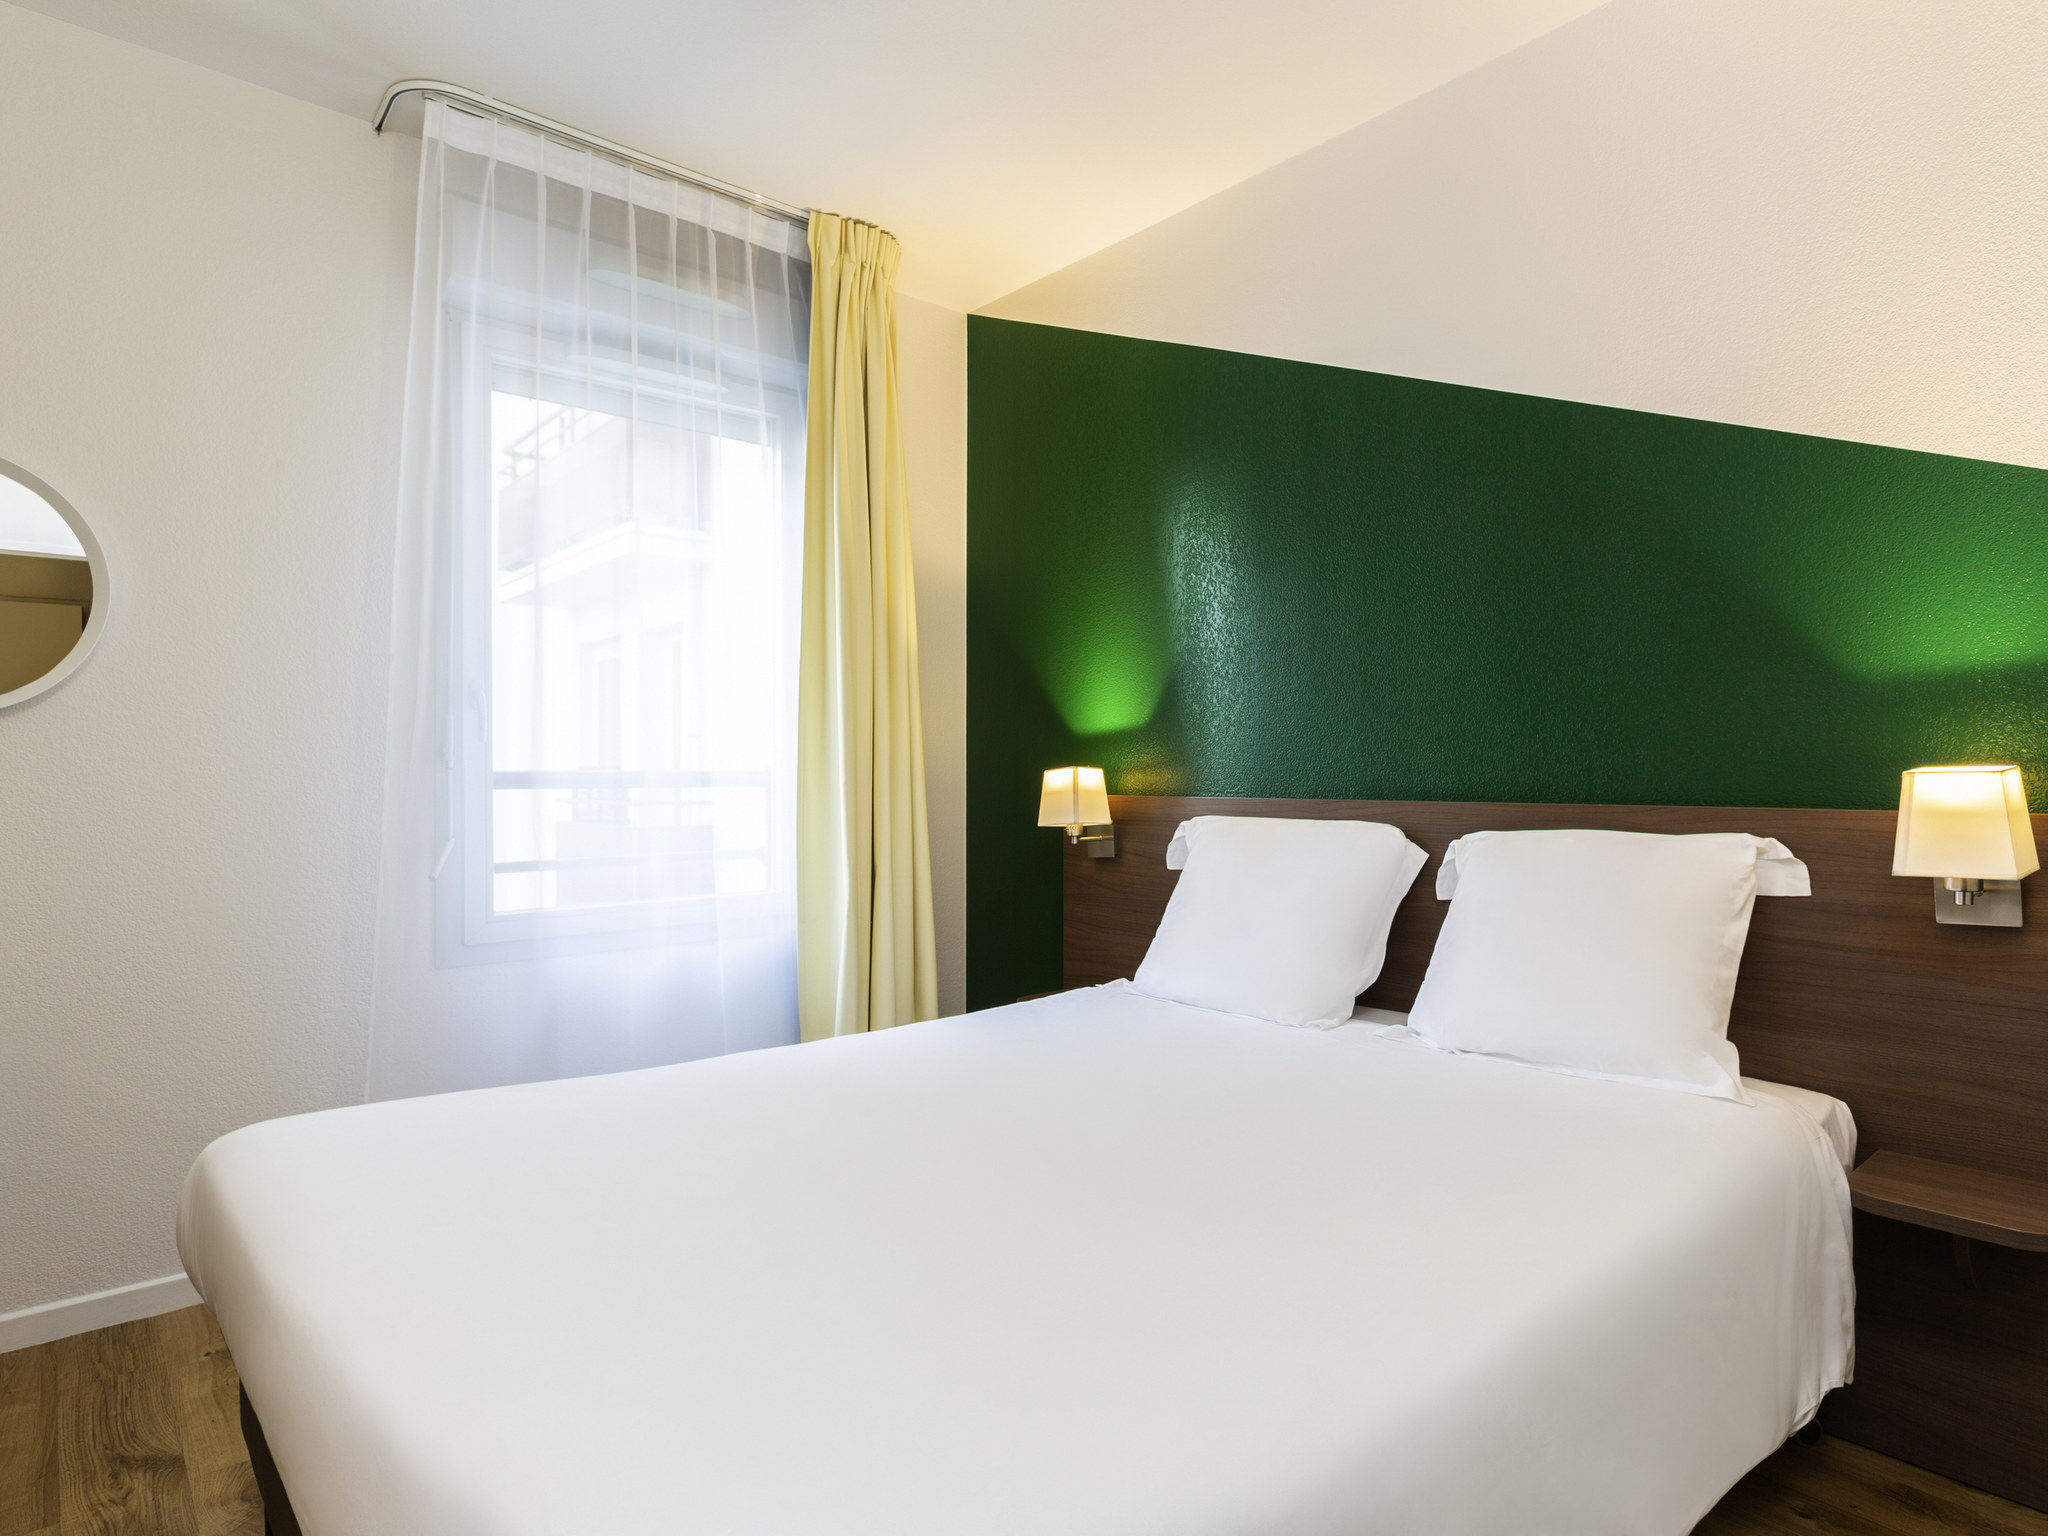 Hotell – Aparthotel Adagio access Carrières-sous-Poissy